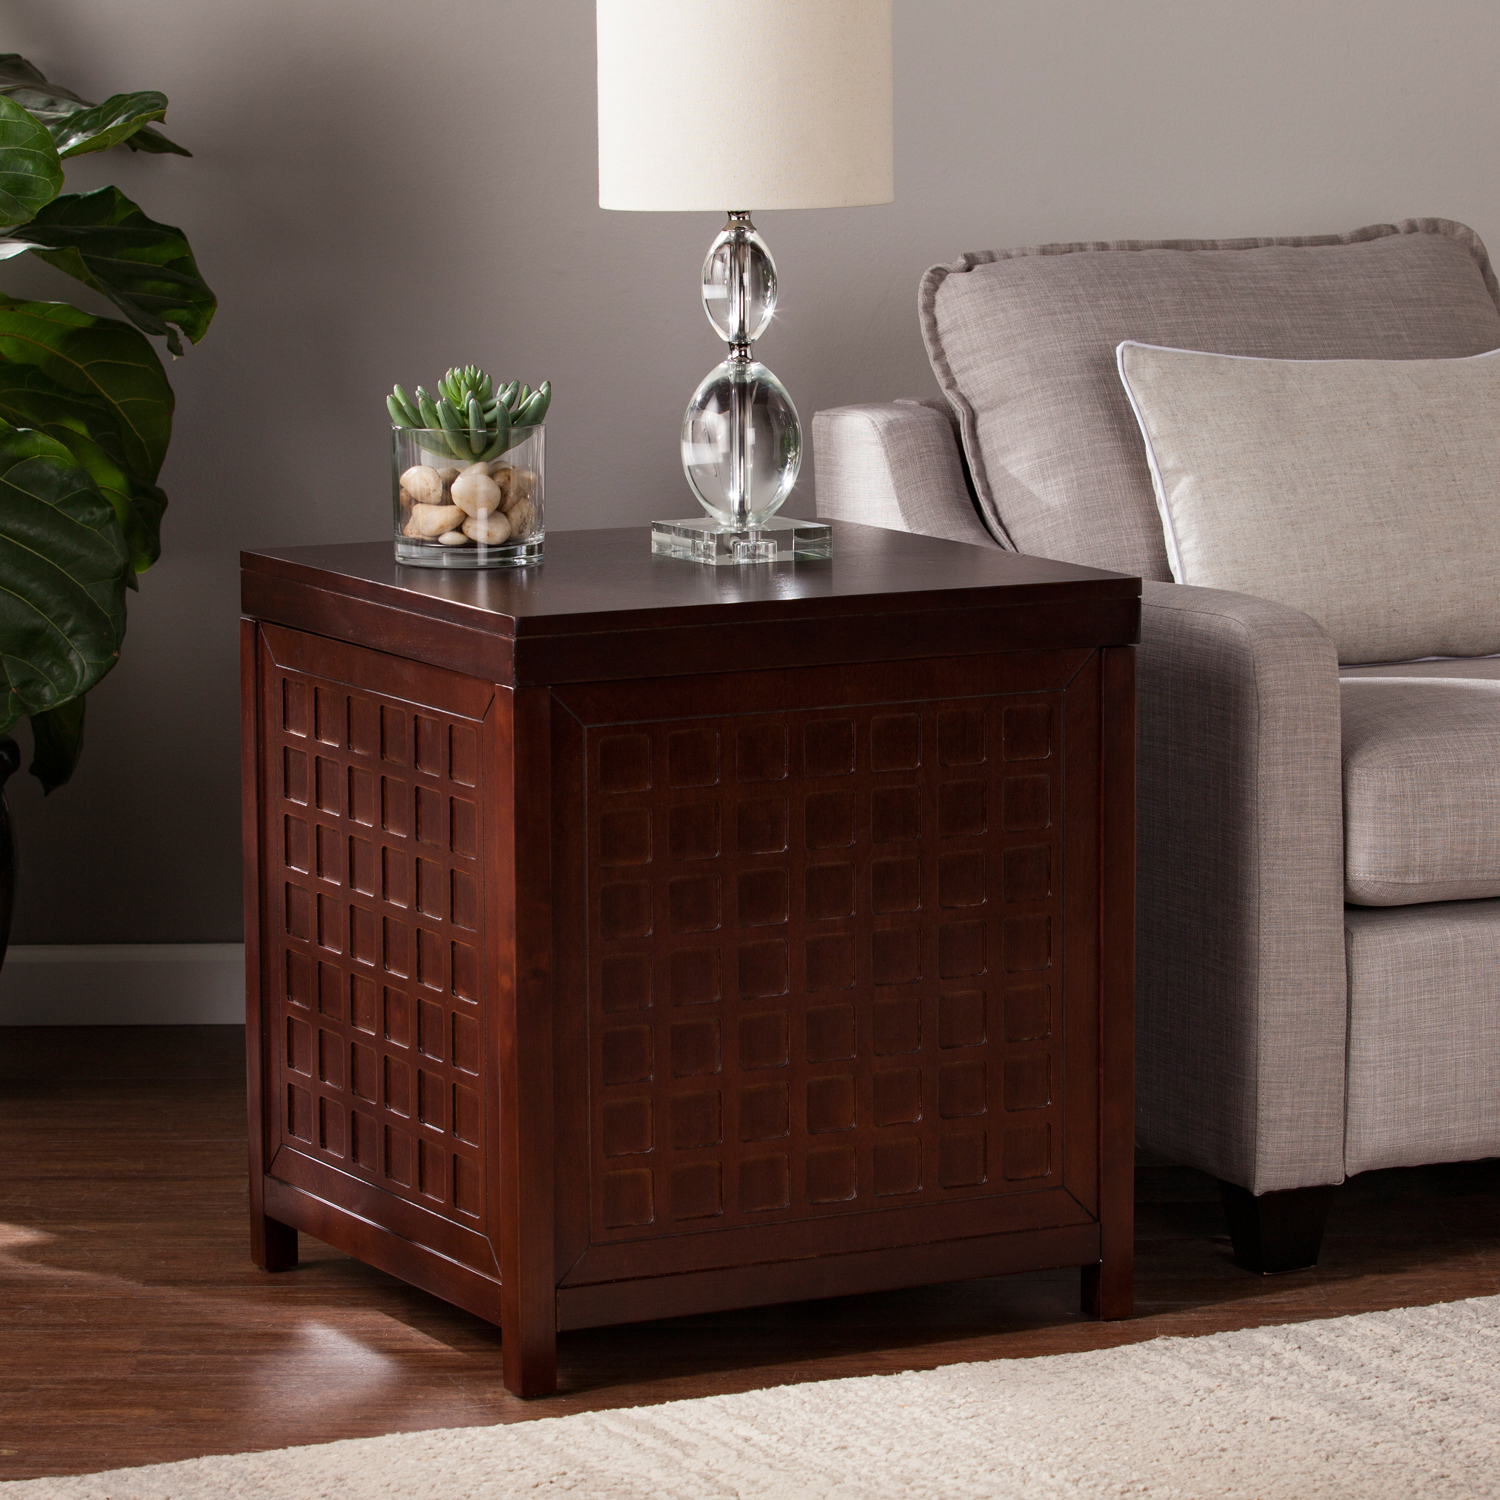 Southern Enterprises Alva Trunk End Table, Espresso